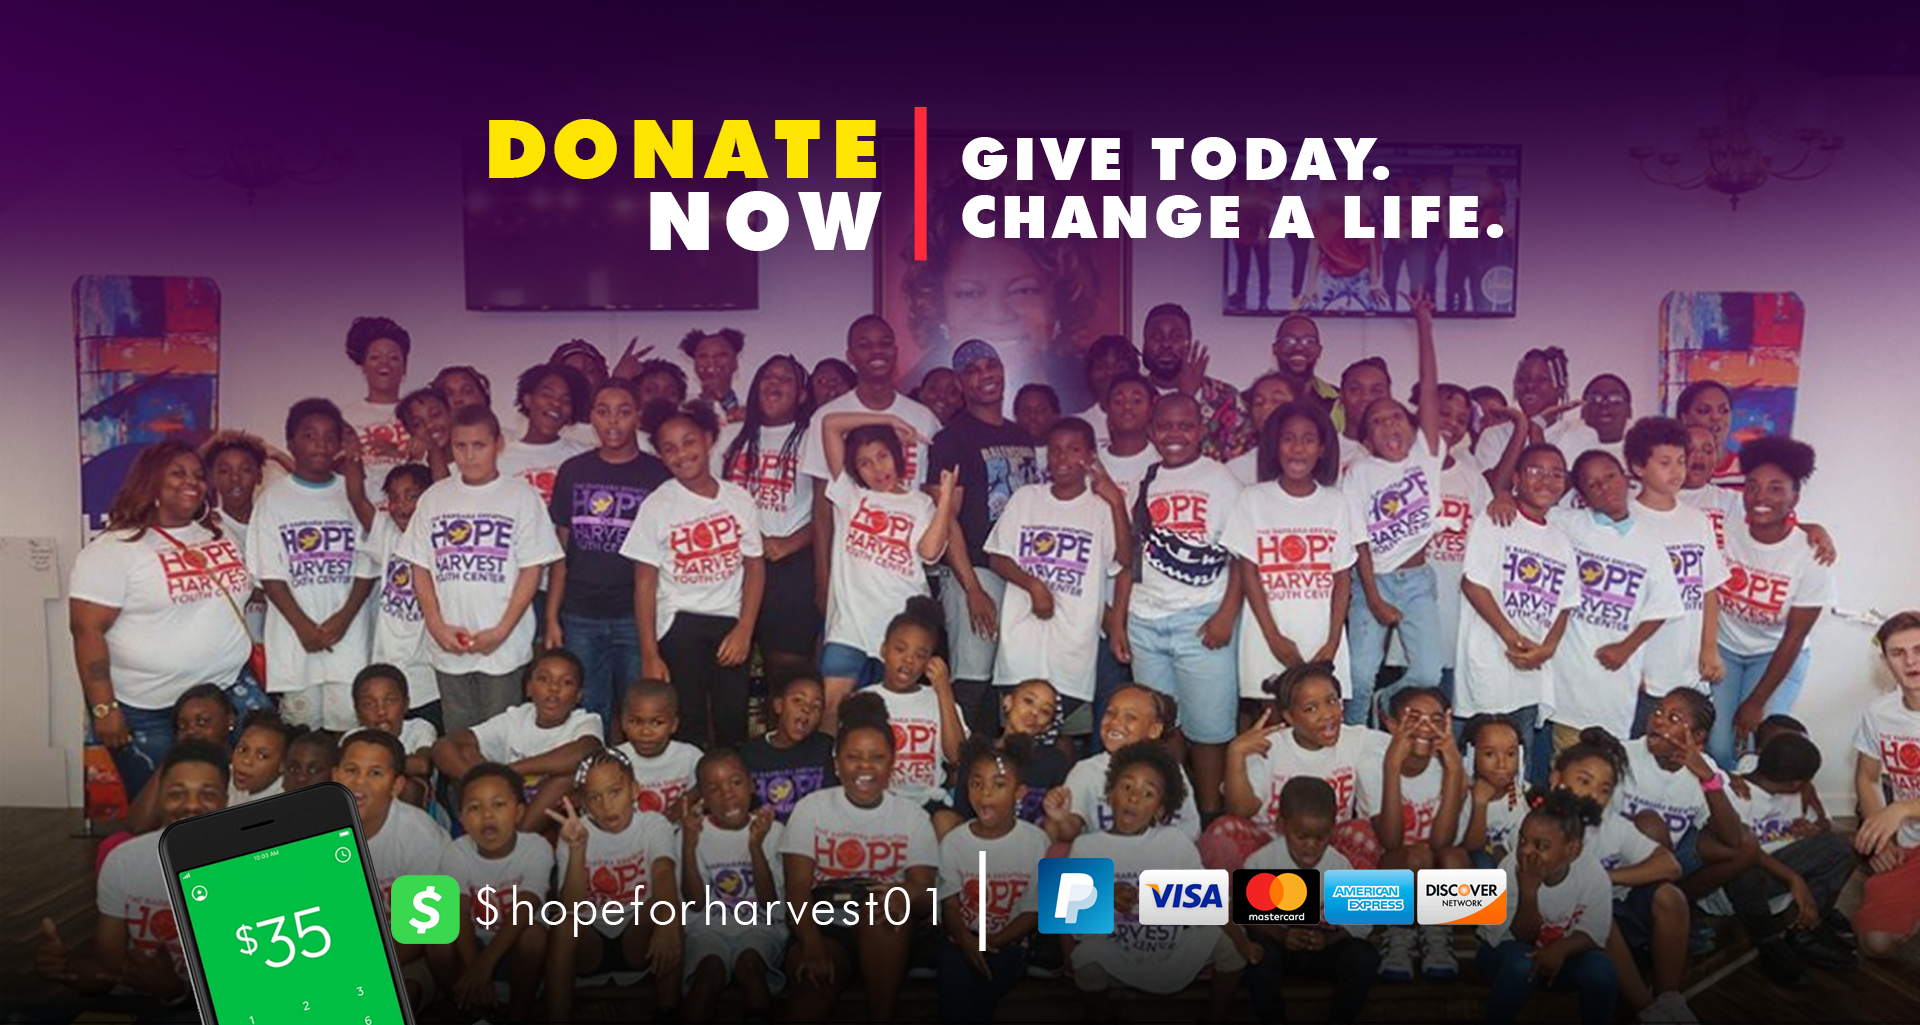 Give Today. Change A Life.